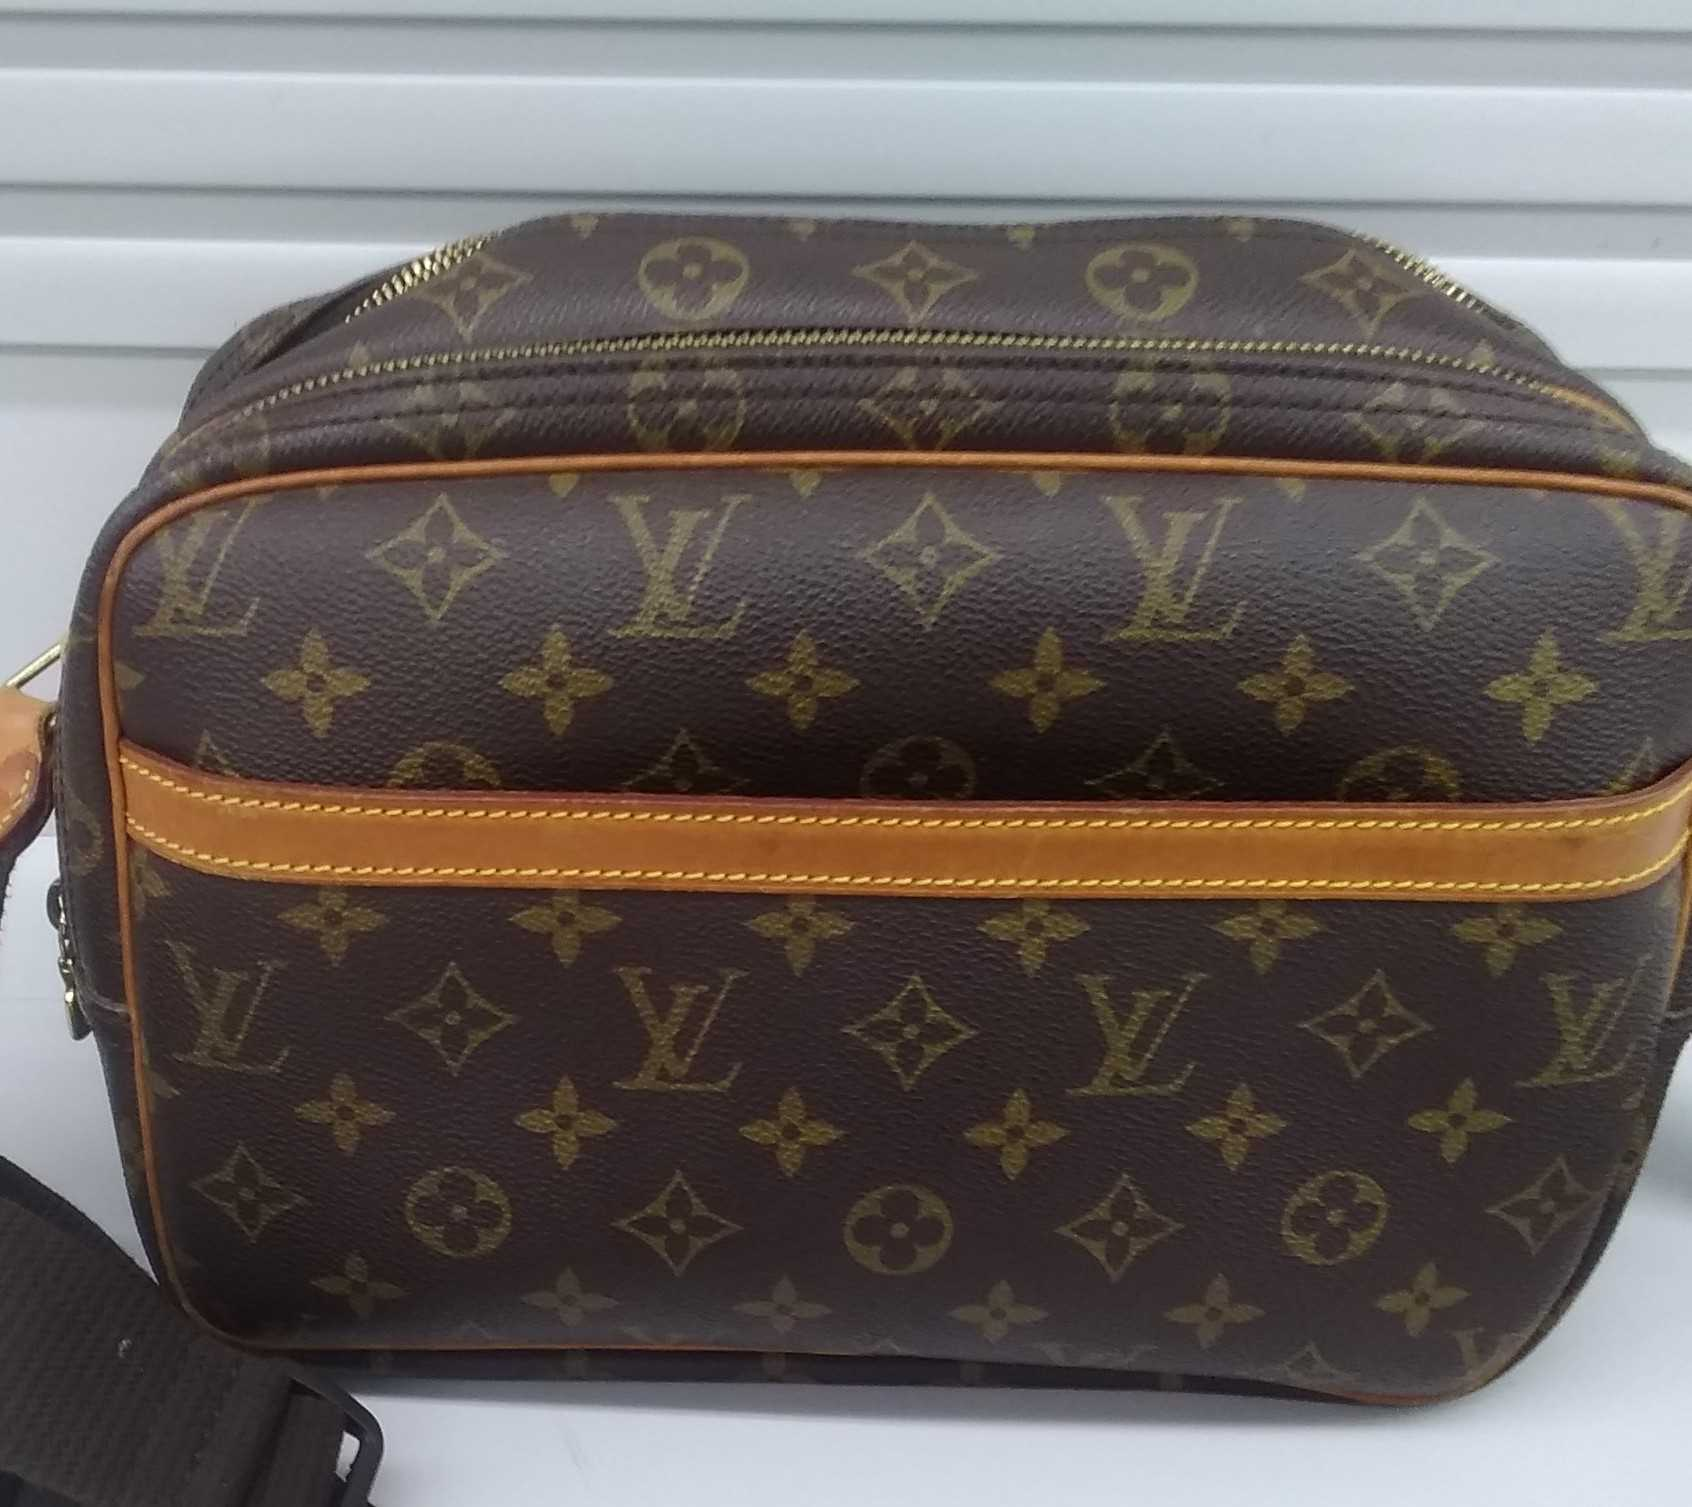 リポーターPM|LOUIS VUITTON